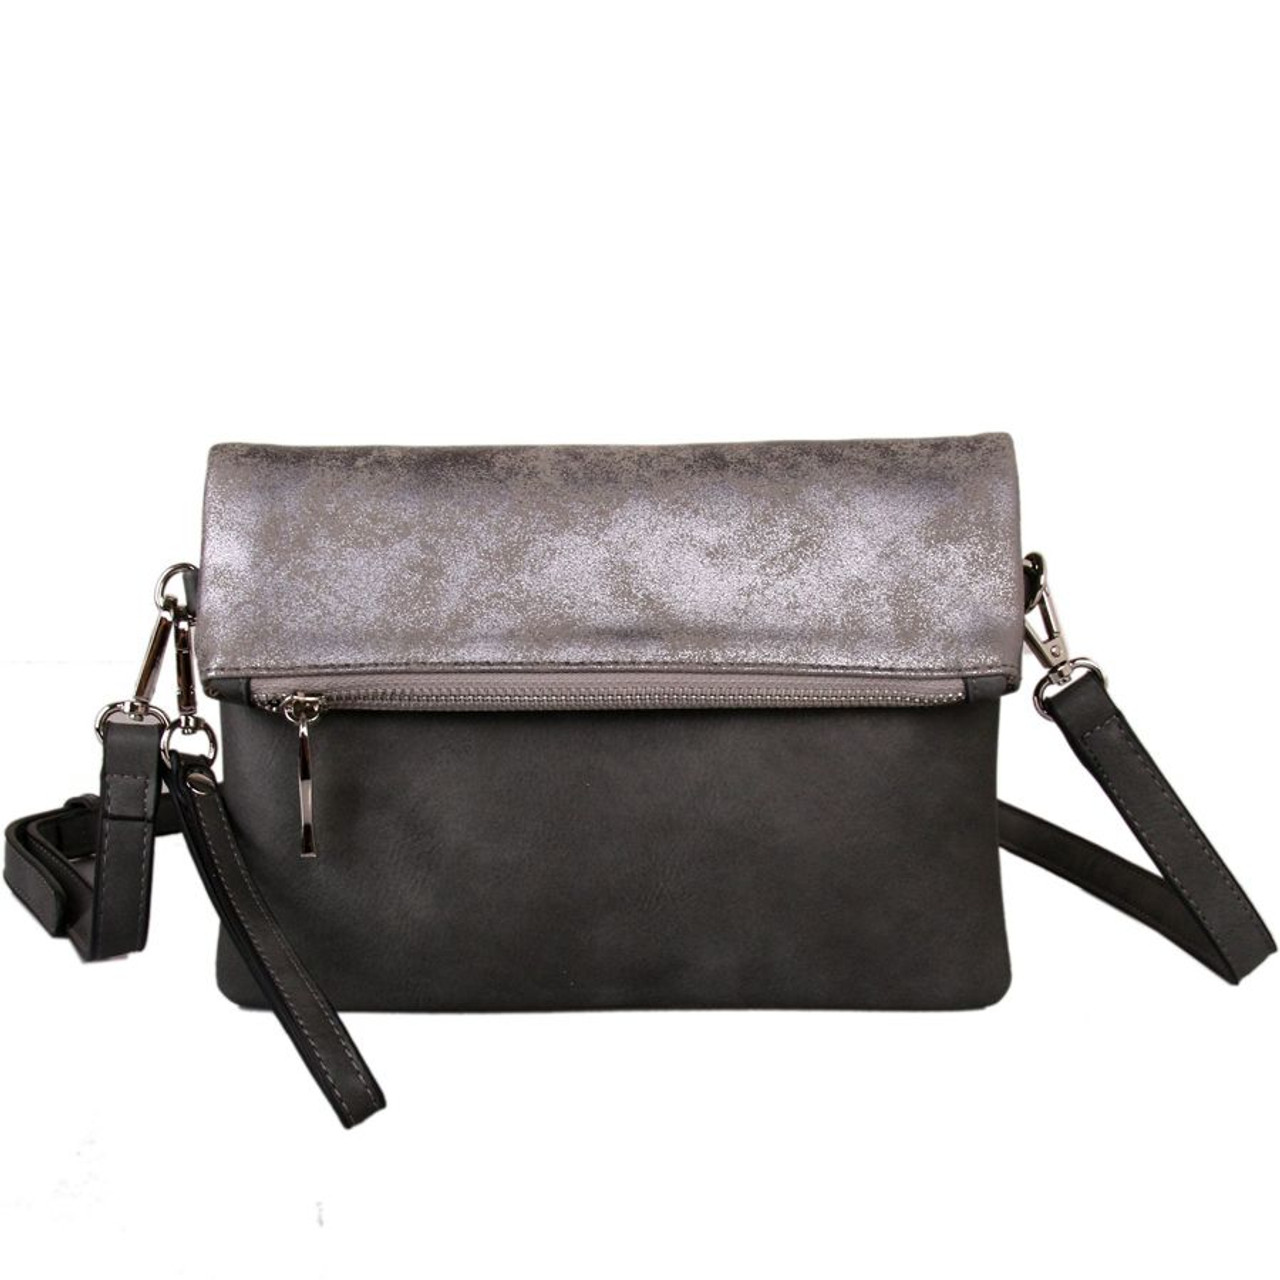 ecf52c1cc867 Red Cuckoo Grey Two Tone Cross Body Bag - Itsy Bitsy Boutique